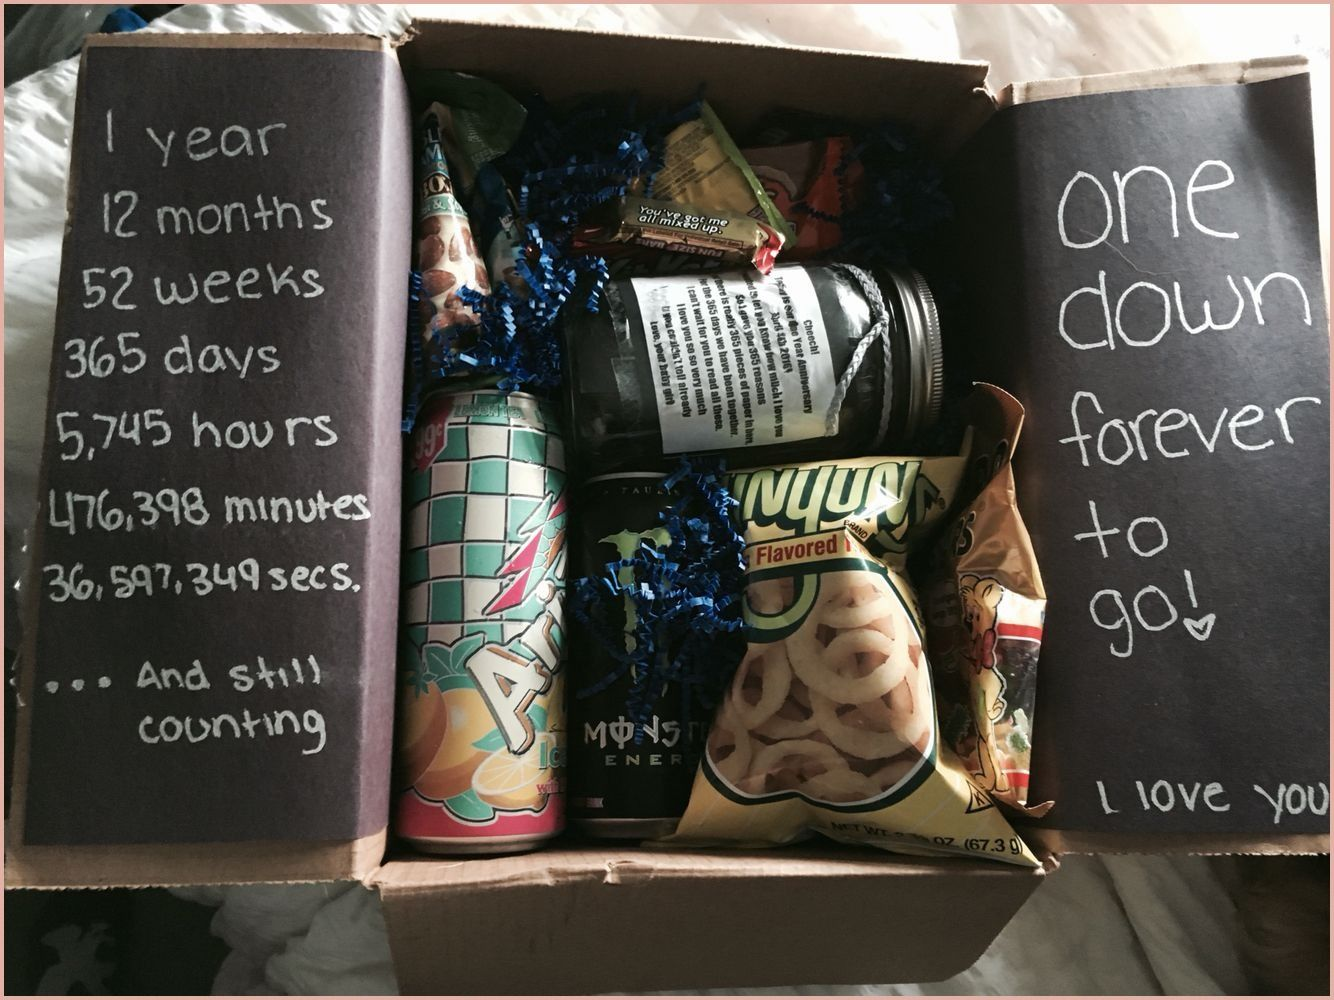 One Year Wedding Anniversary Gifts for Him: 9 theory that Don't Take A Long Time